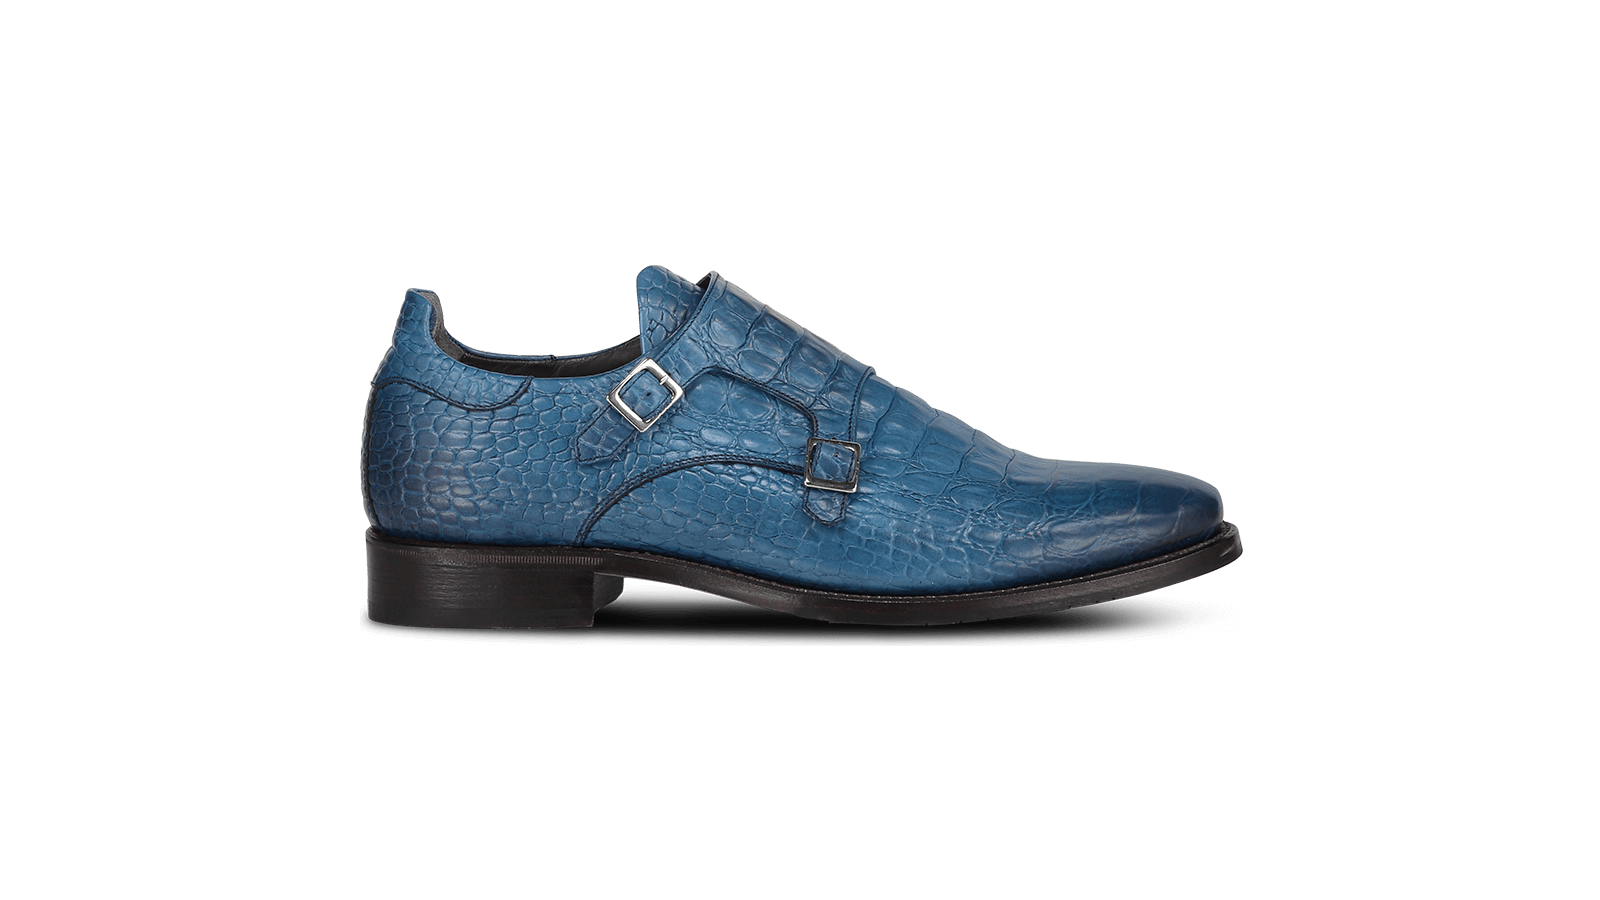 discount sale outlet boutique buy best Sjoerd Willem Croco Jeans Monk Shoes